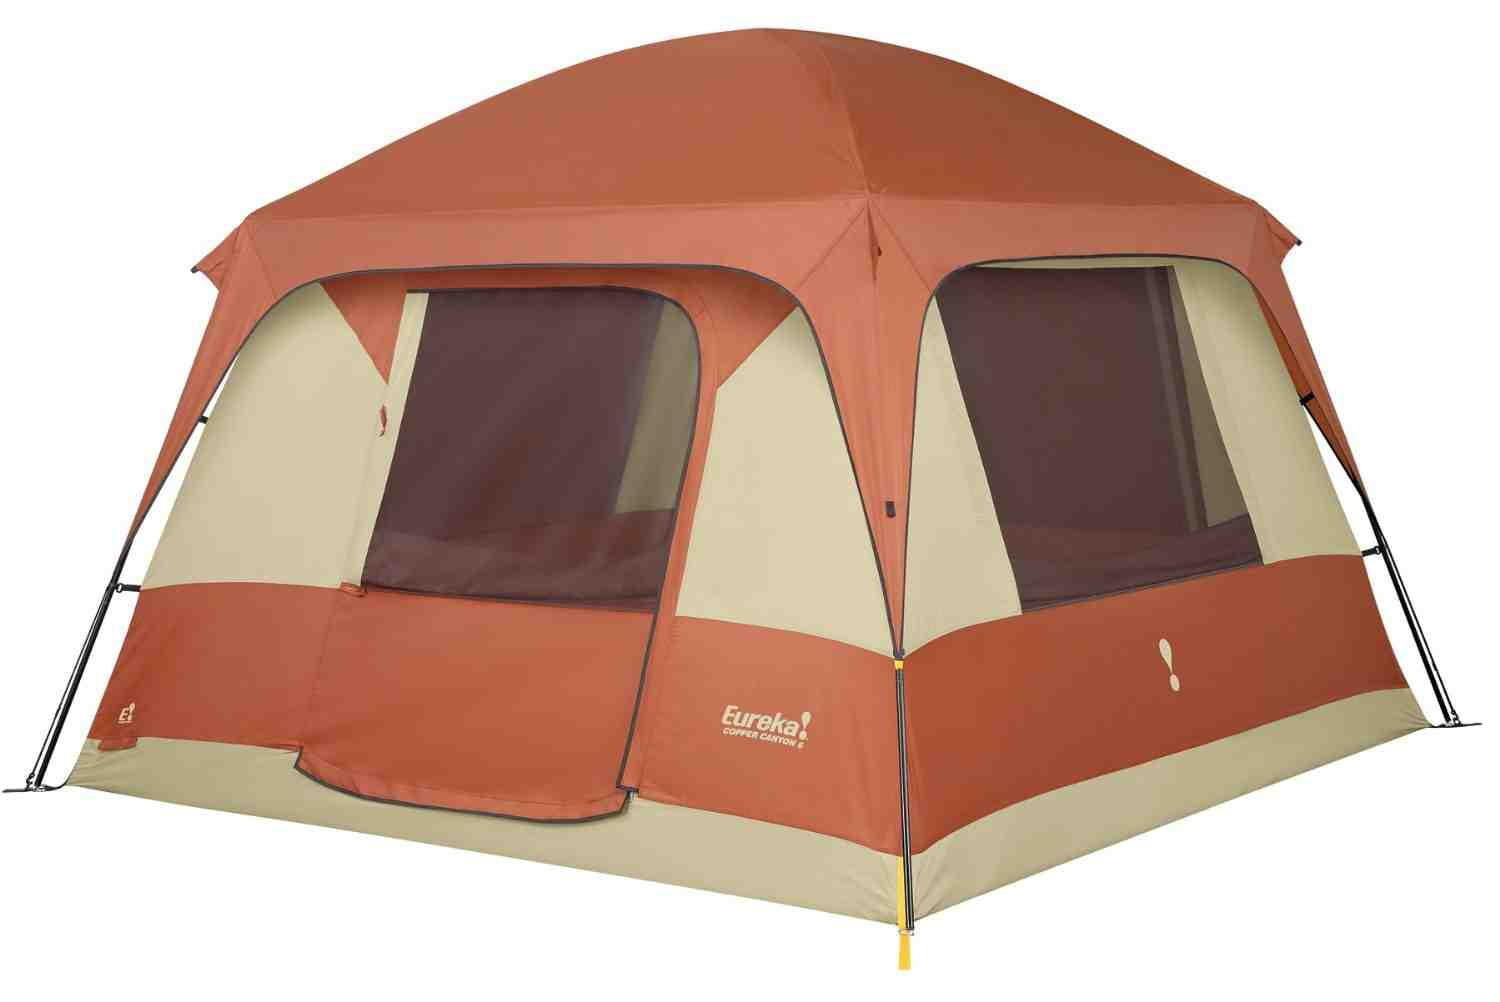 It offers the headroom and inner space of a wall tent with the ease of setup of a family tent.  sc 1 st  Tent C&ing at C&etent & Eureka Copper Canyon Tent u2022 Campetent